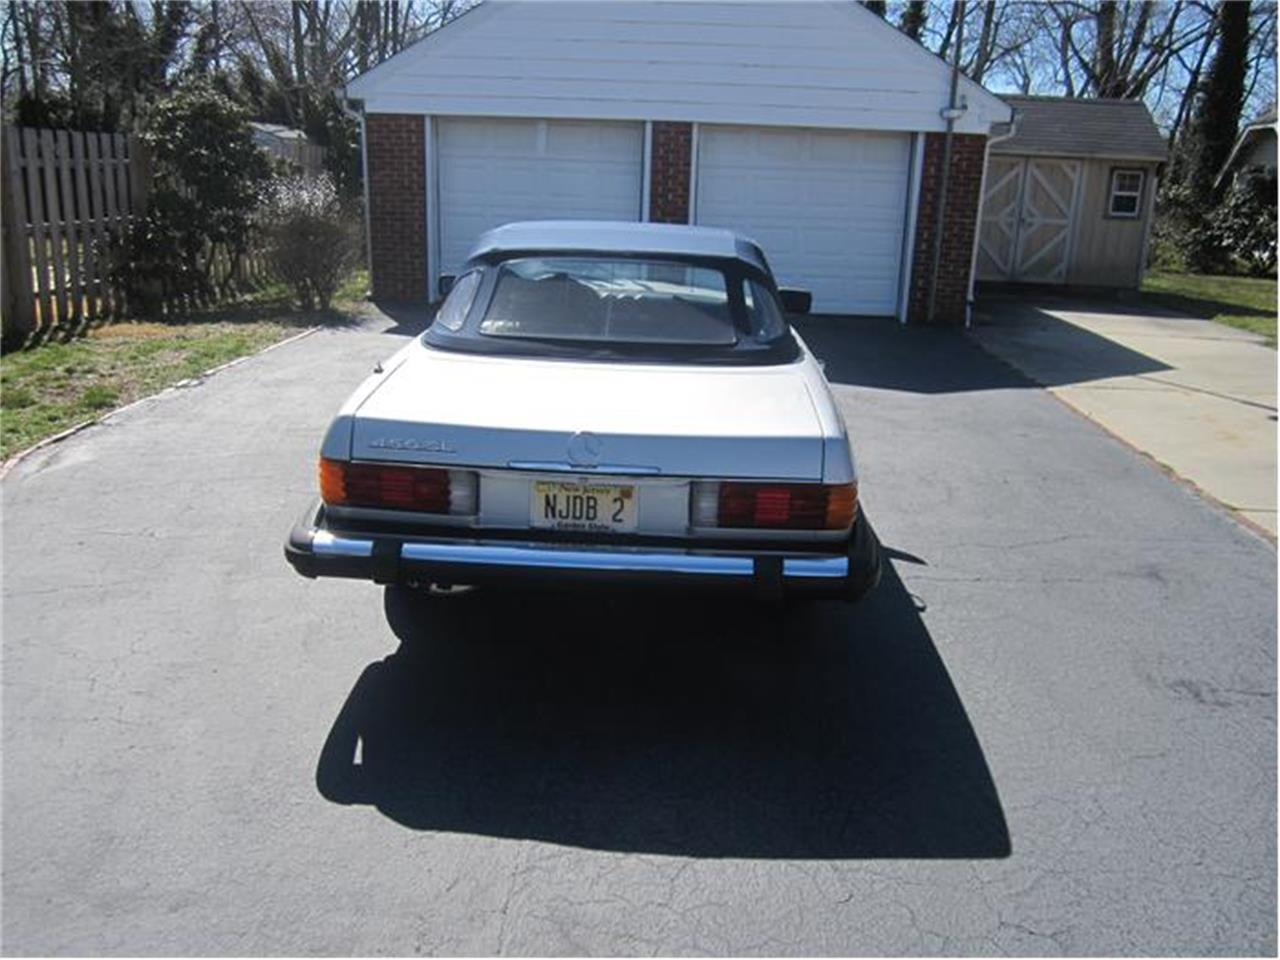 Large Picture of 1978 Mercedes-Benz 450SL located in New Jersey - $6,900.00 Offered by a Private Seller - 6T0M